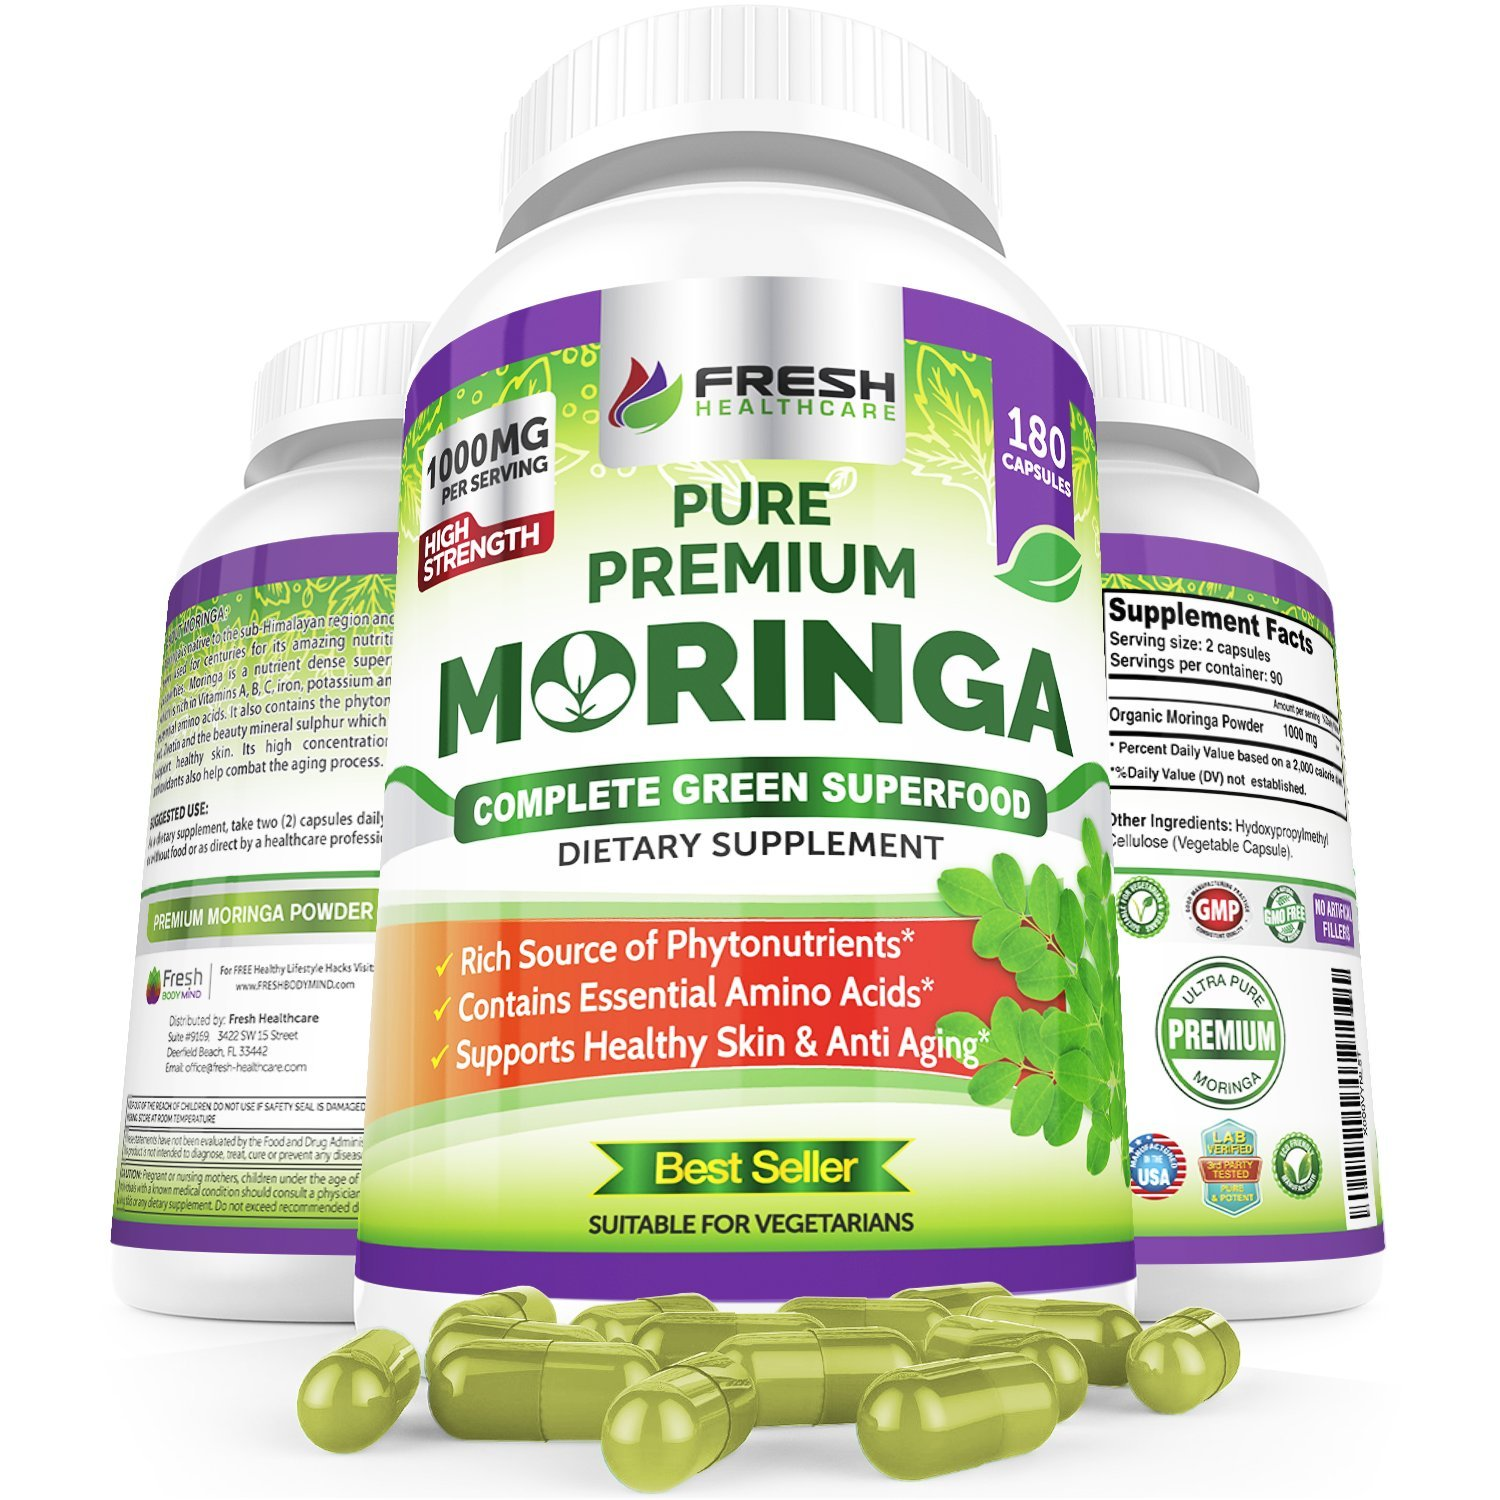 Organic Moringa 180 Capsules - 100% Pure Leaf Powder - Max 1000mg Per Serving - Complete Green Superfood Supplement - Full 3 Month Supply - Miracle Tree Organic Moringa Oleifera Powder Vegan Caps by FRESH HEALTHCARE